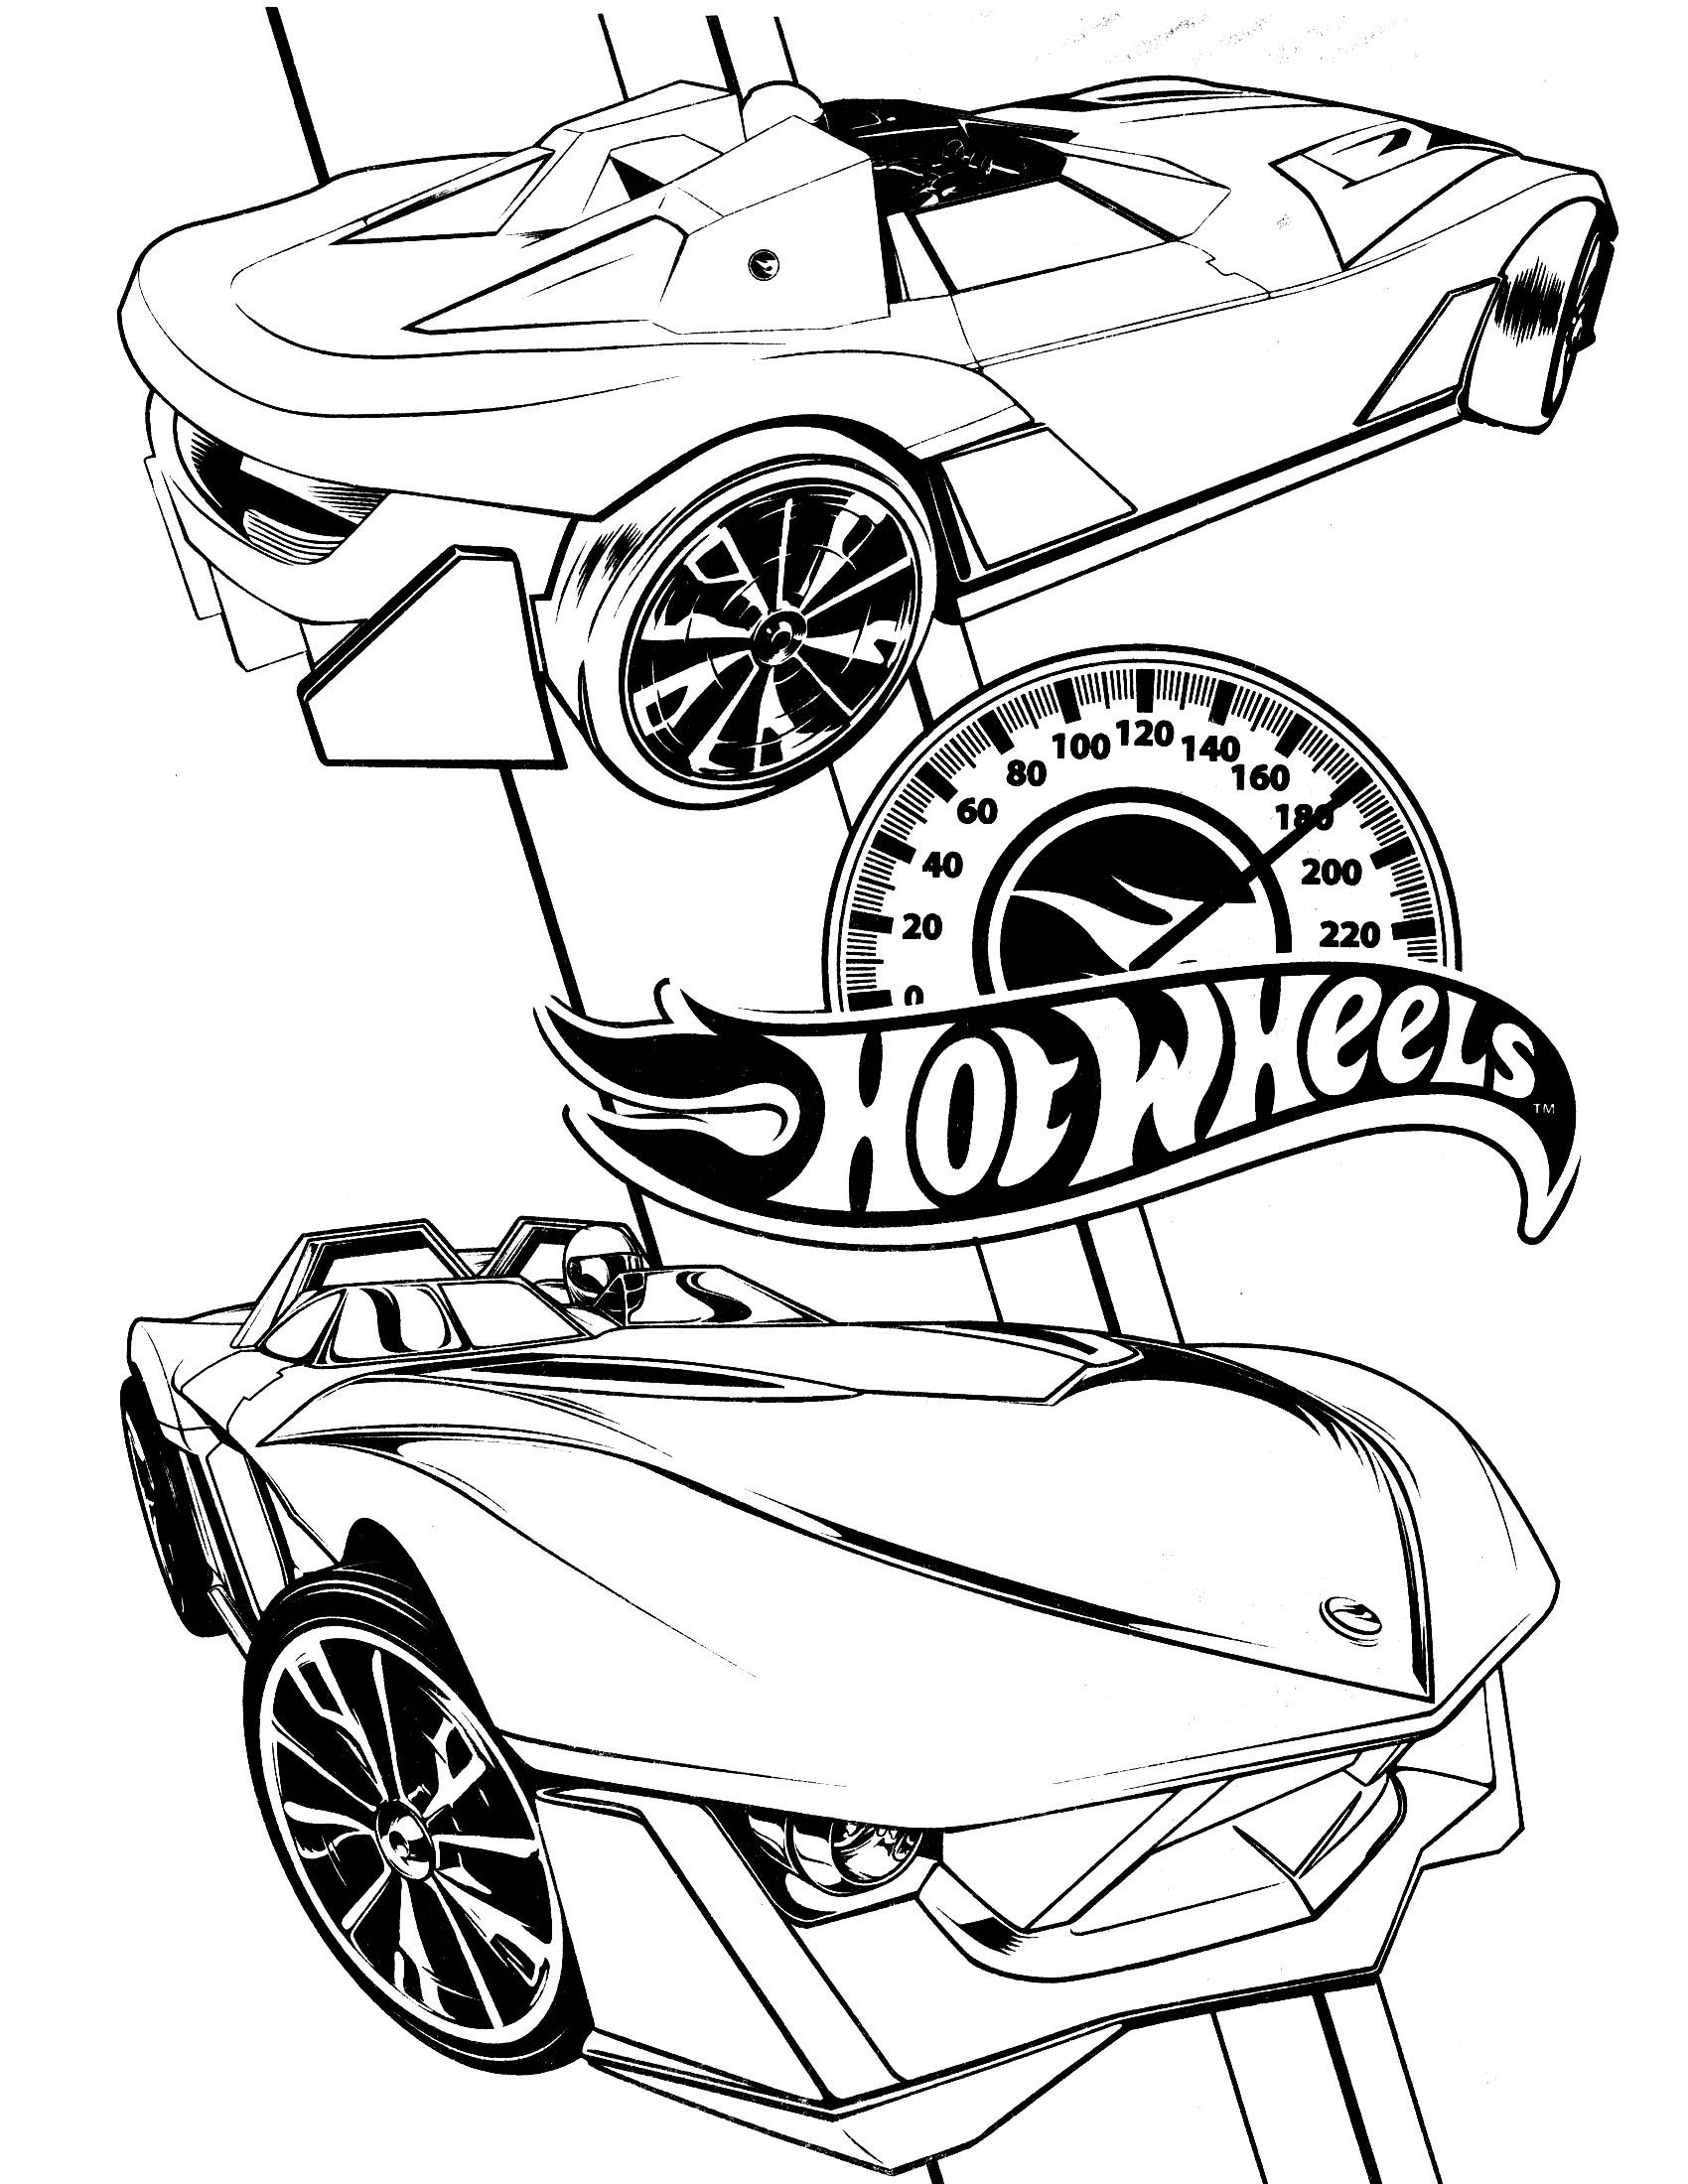 Online coloring hot wheels - Hot Wheels Coloring Page